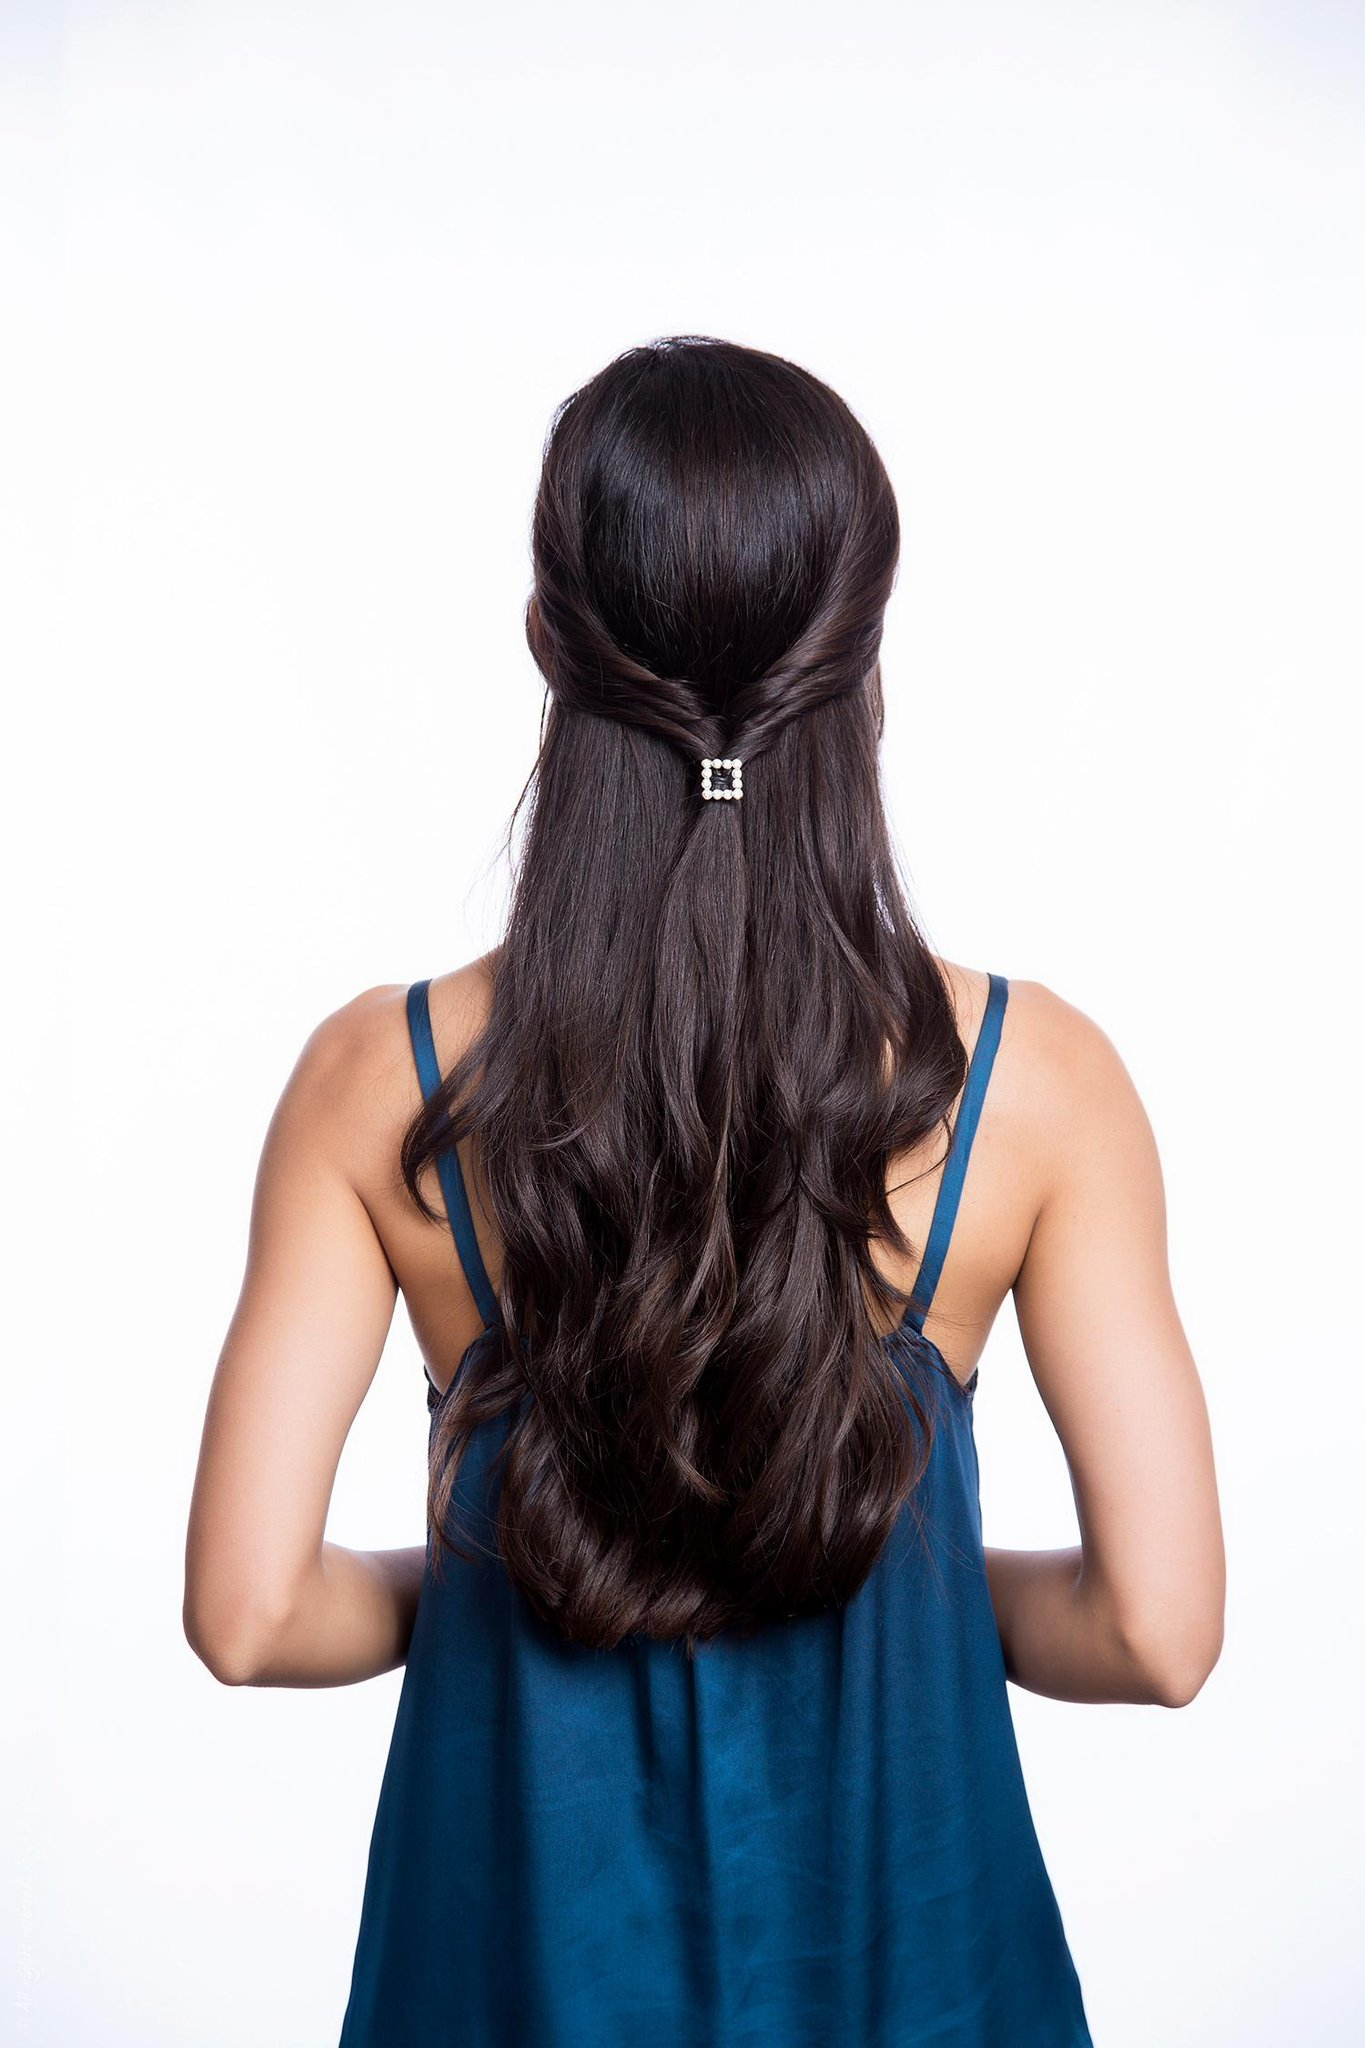 An easy half-up hair tutorial for all of your holiday parties: http://t.co/VEqh7nFnsc #howto http://t.co/duS3CRarx2